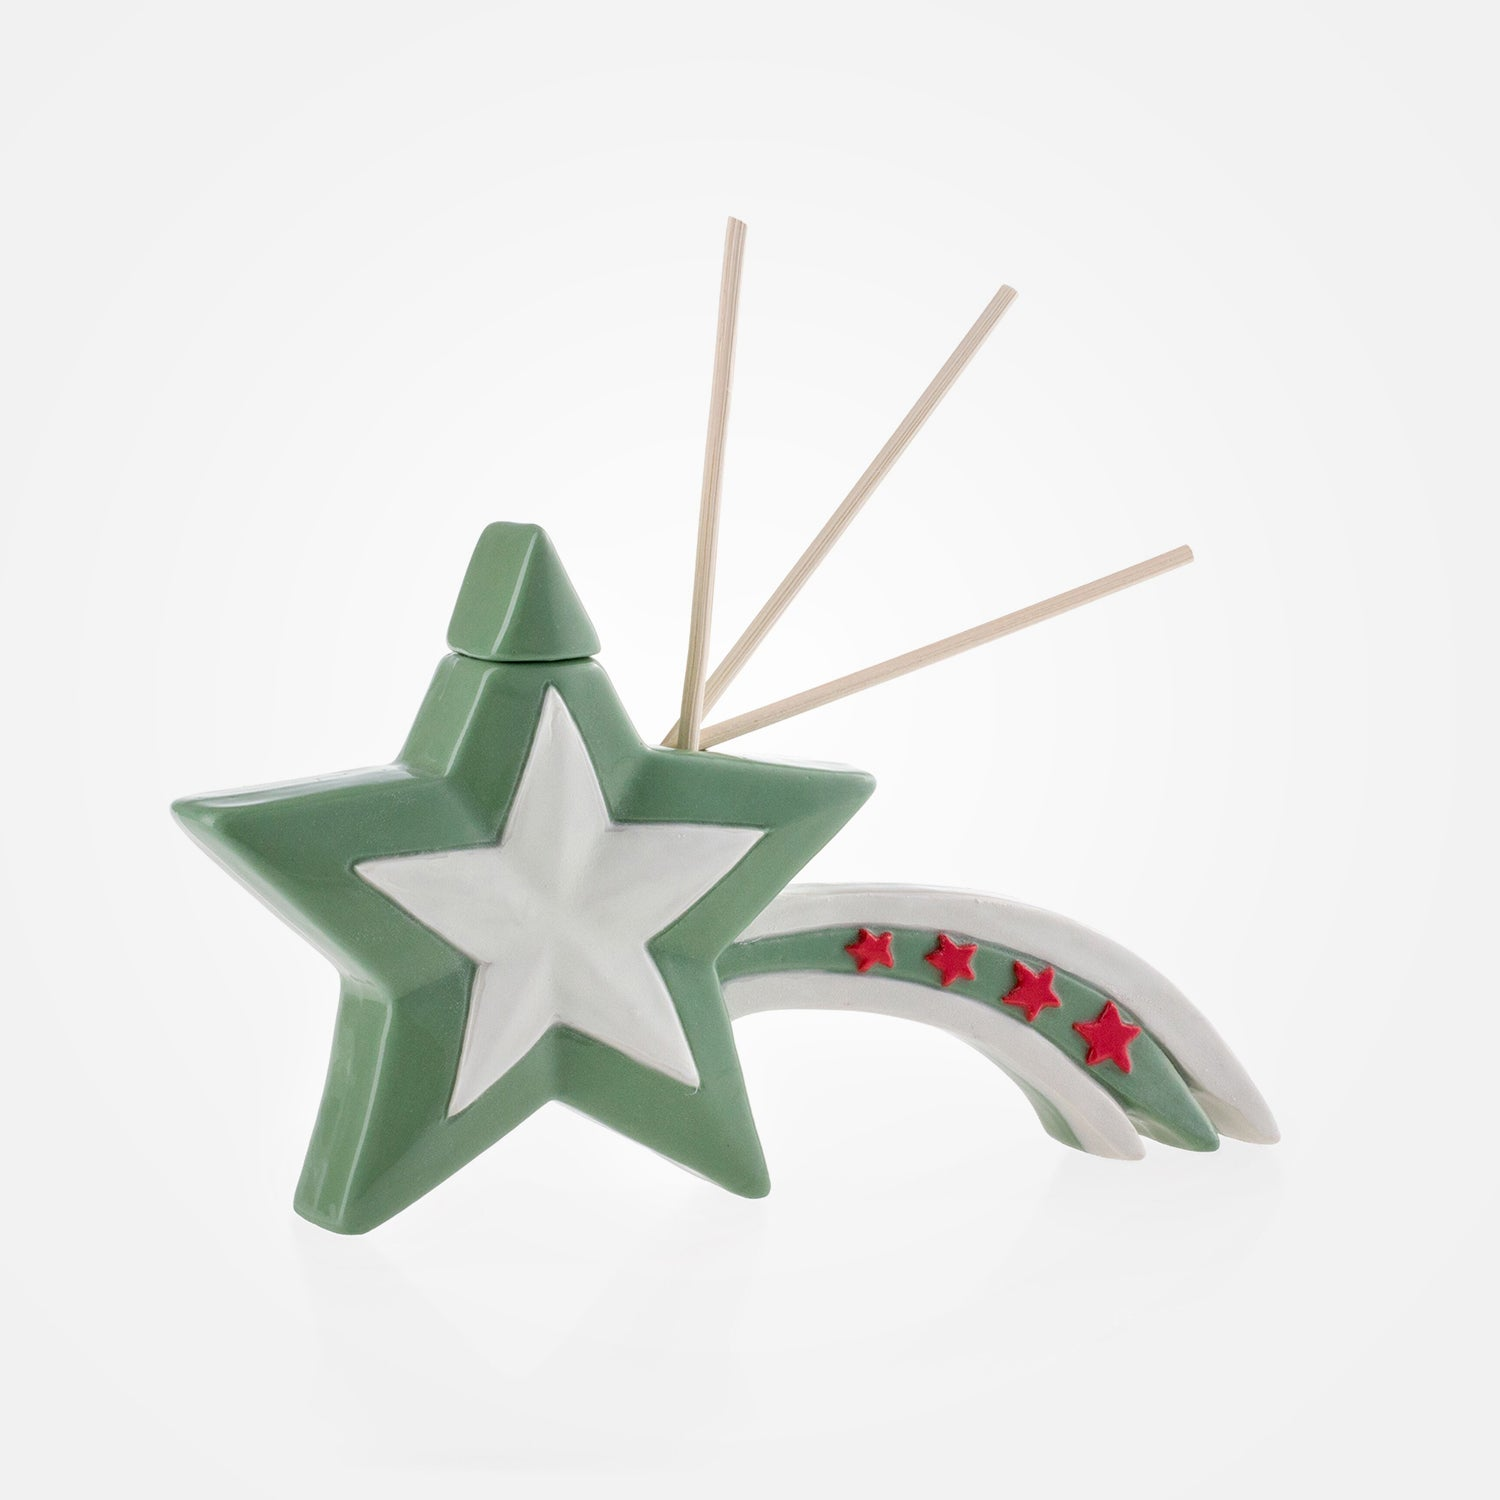 Shooting Star Fragrance Diffuser - The Discover Christmas Collection by Emò Italia